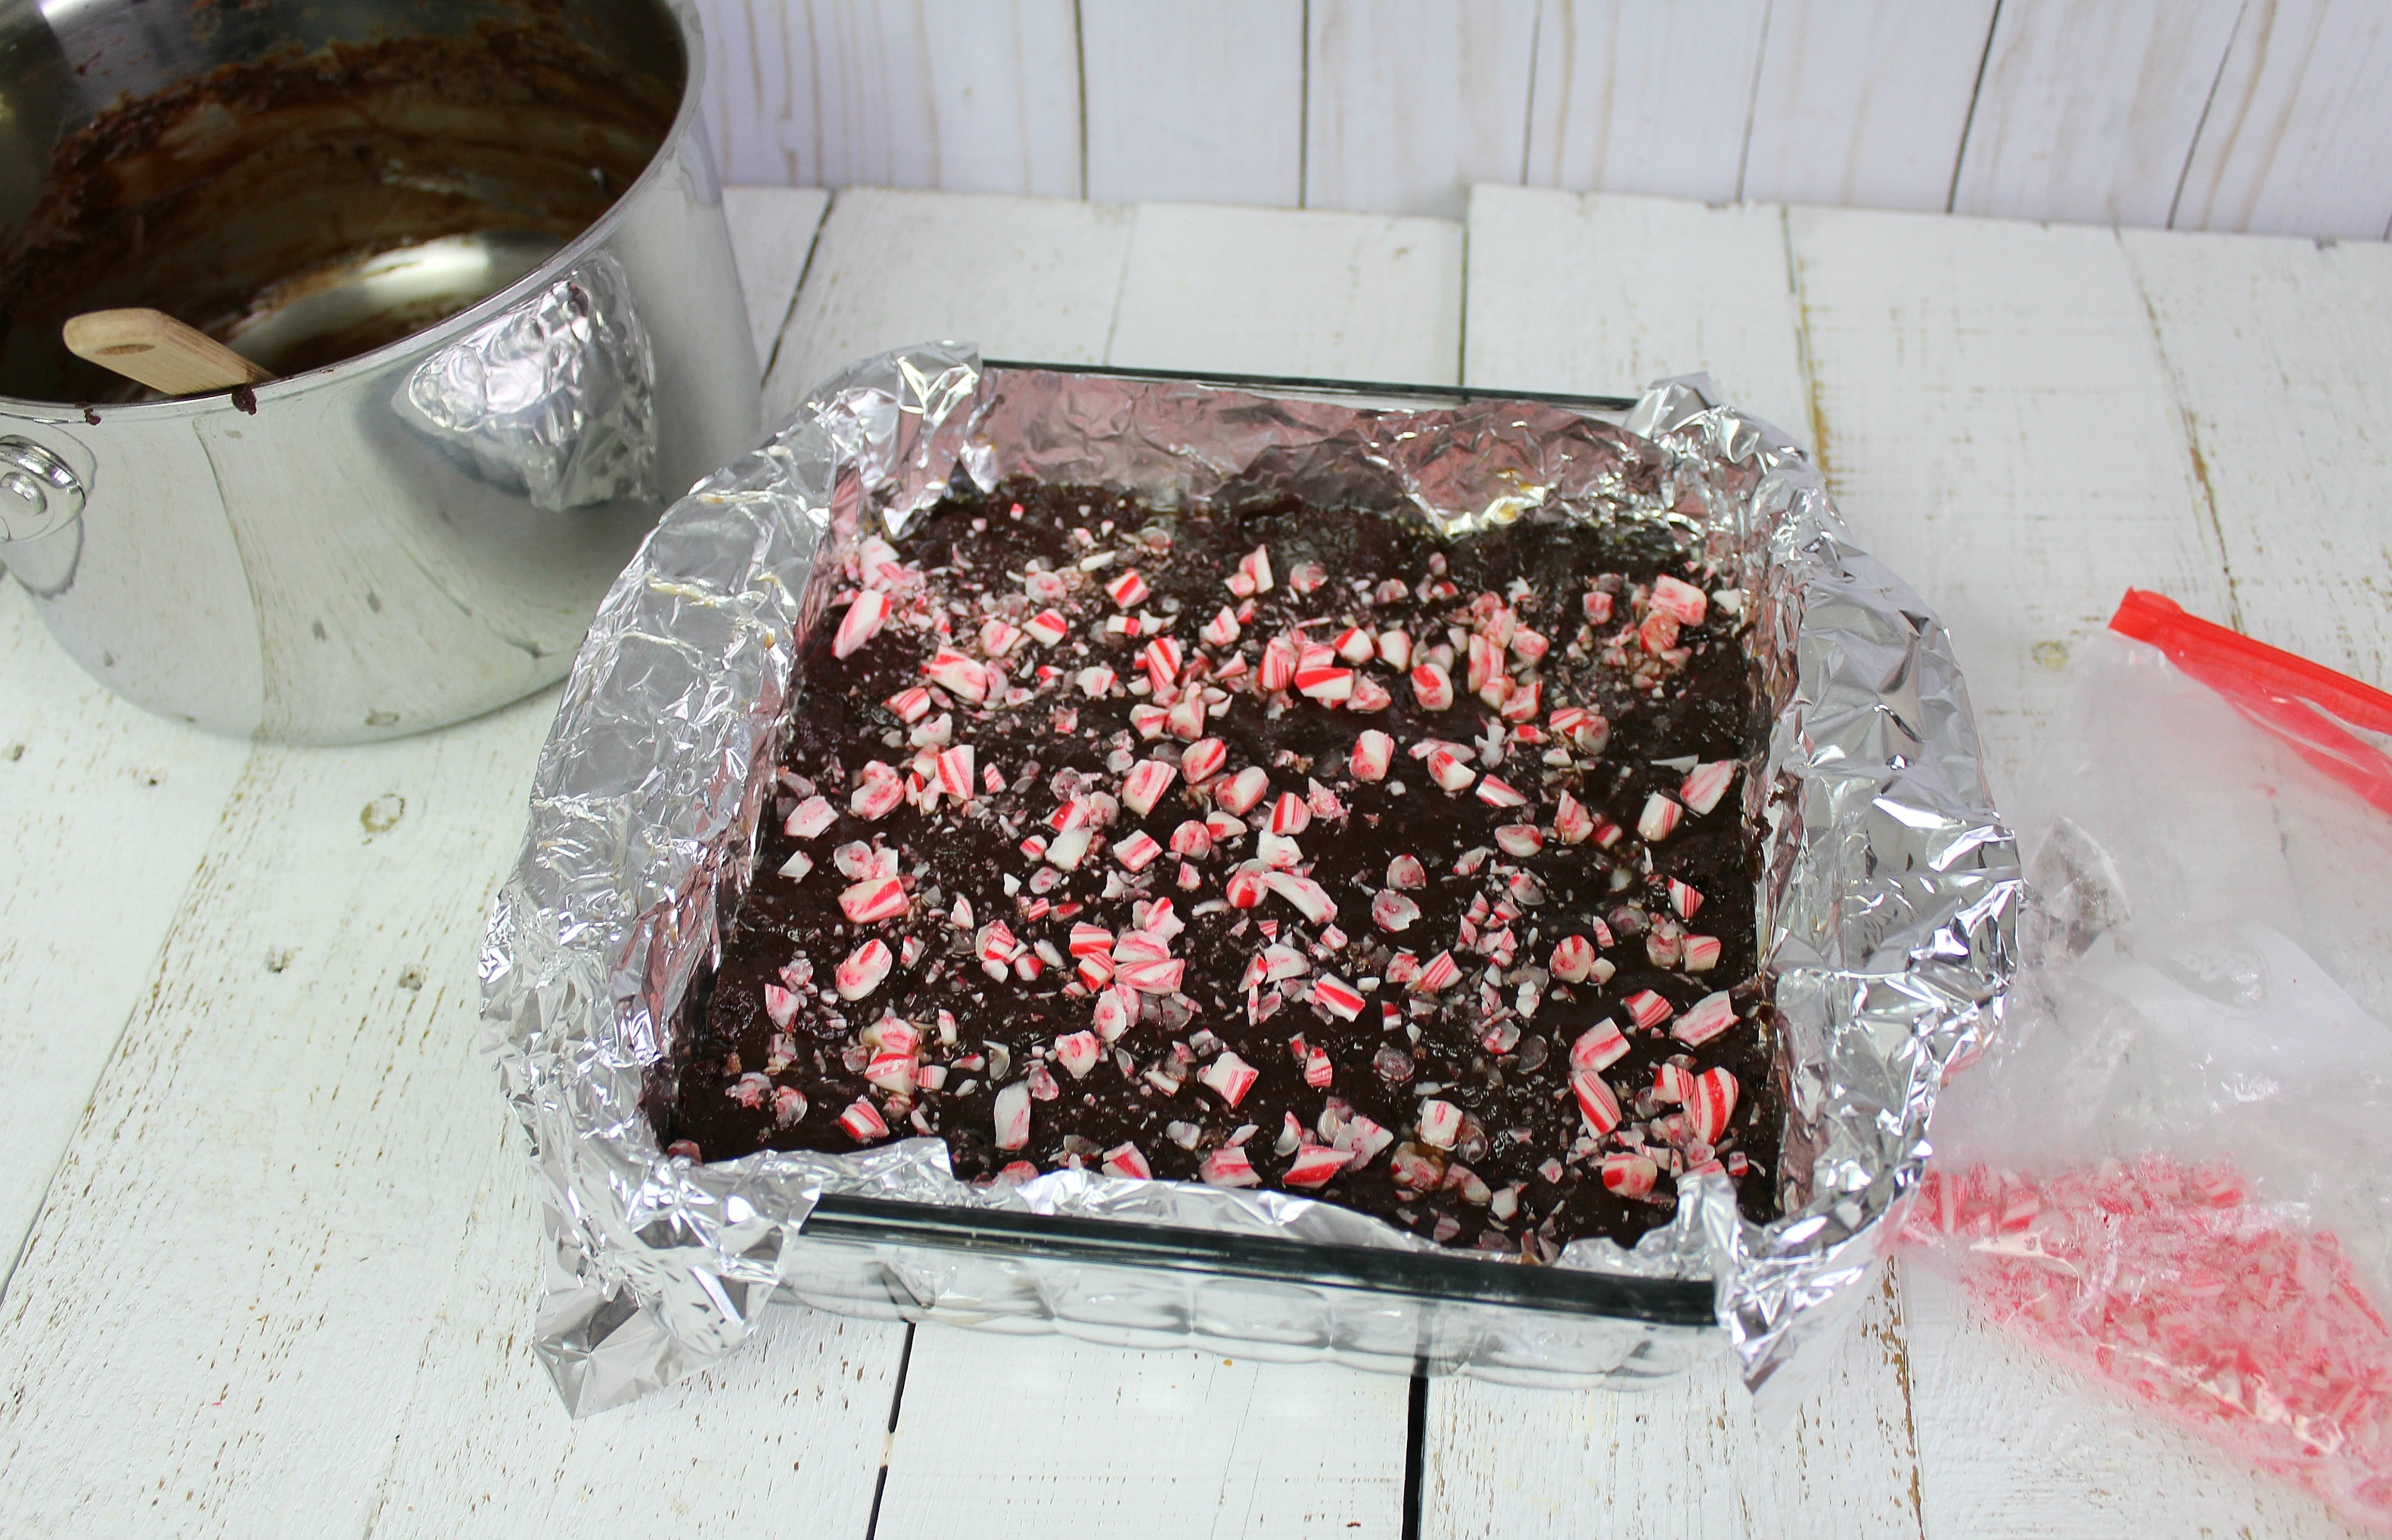 Step 5 of the Easy Peppermint Bark Fudge recipe is to spread the chocolate mixture to the prepared pan and sprinkle with crushed candy canes.